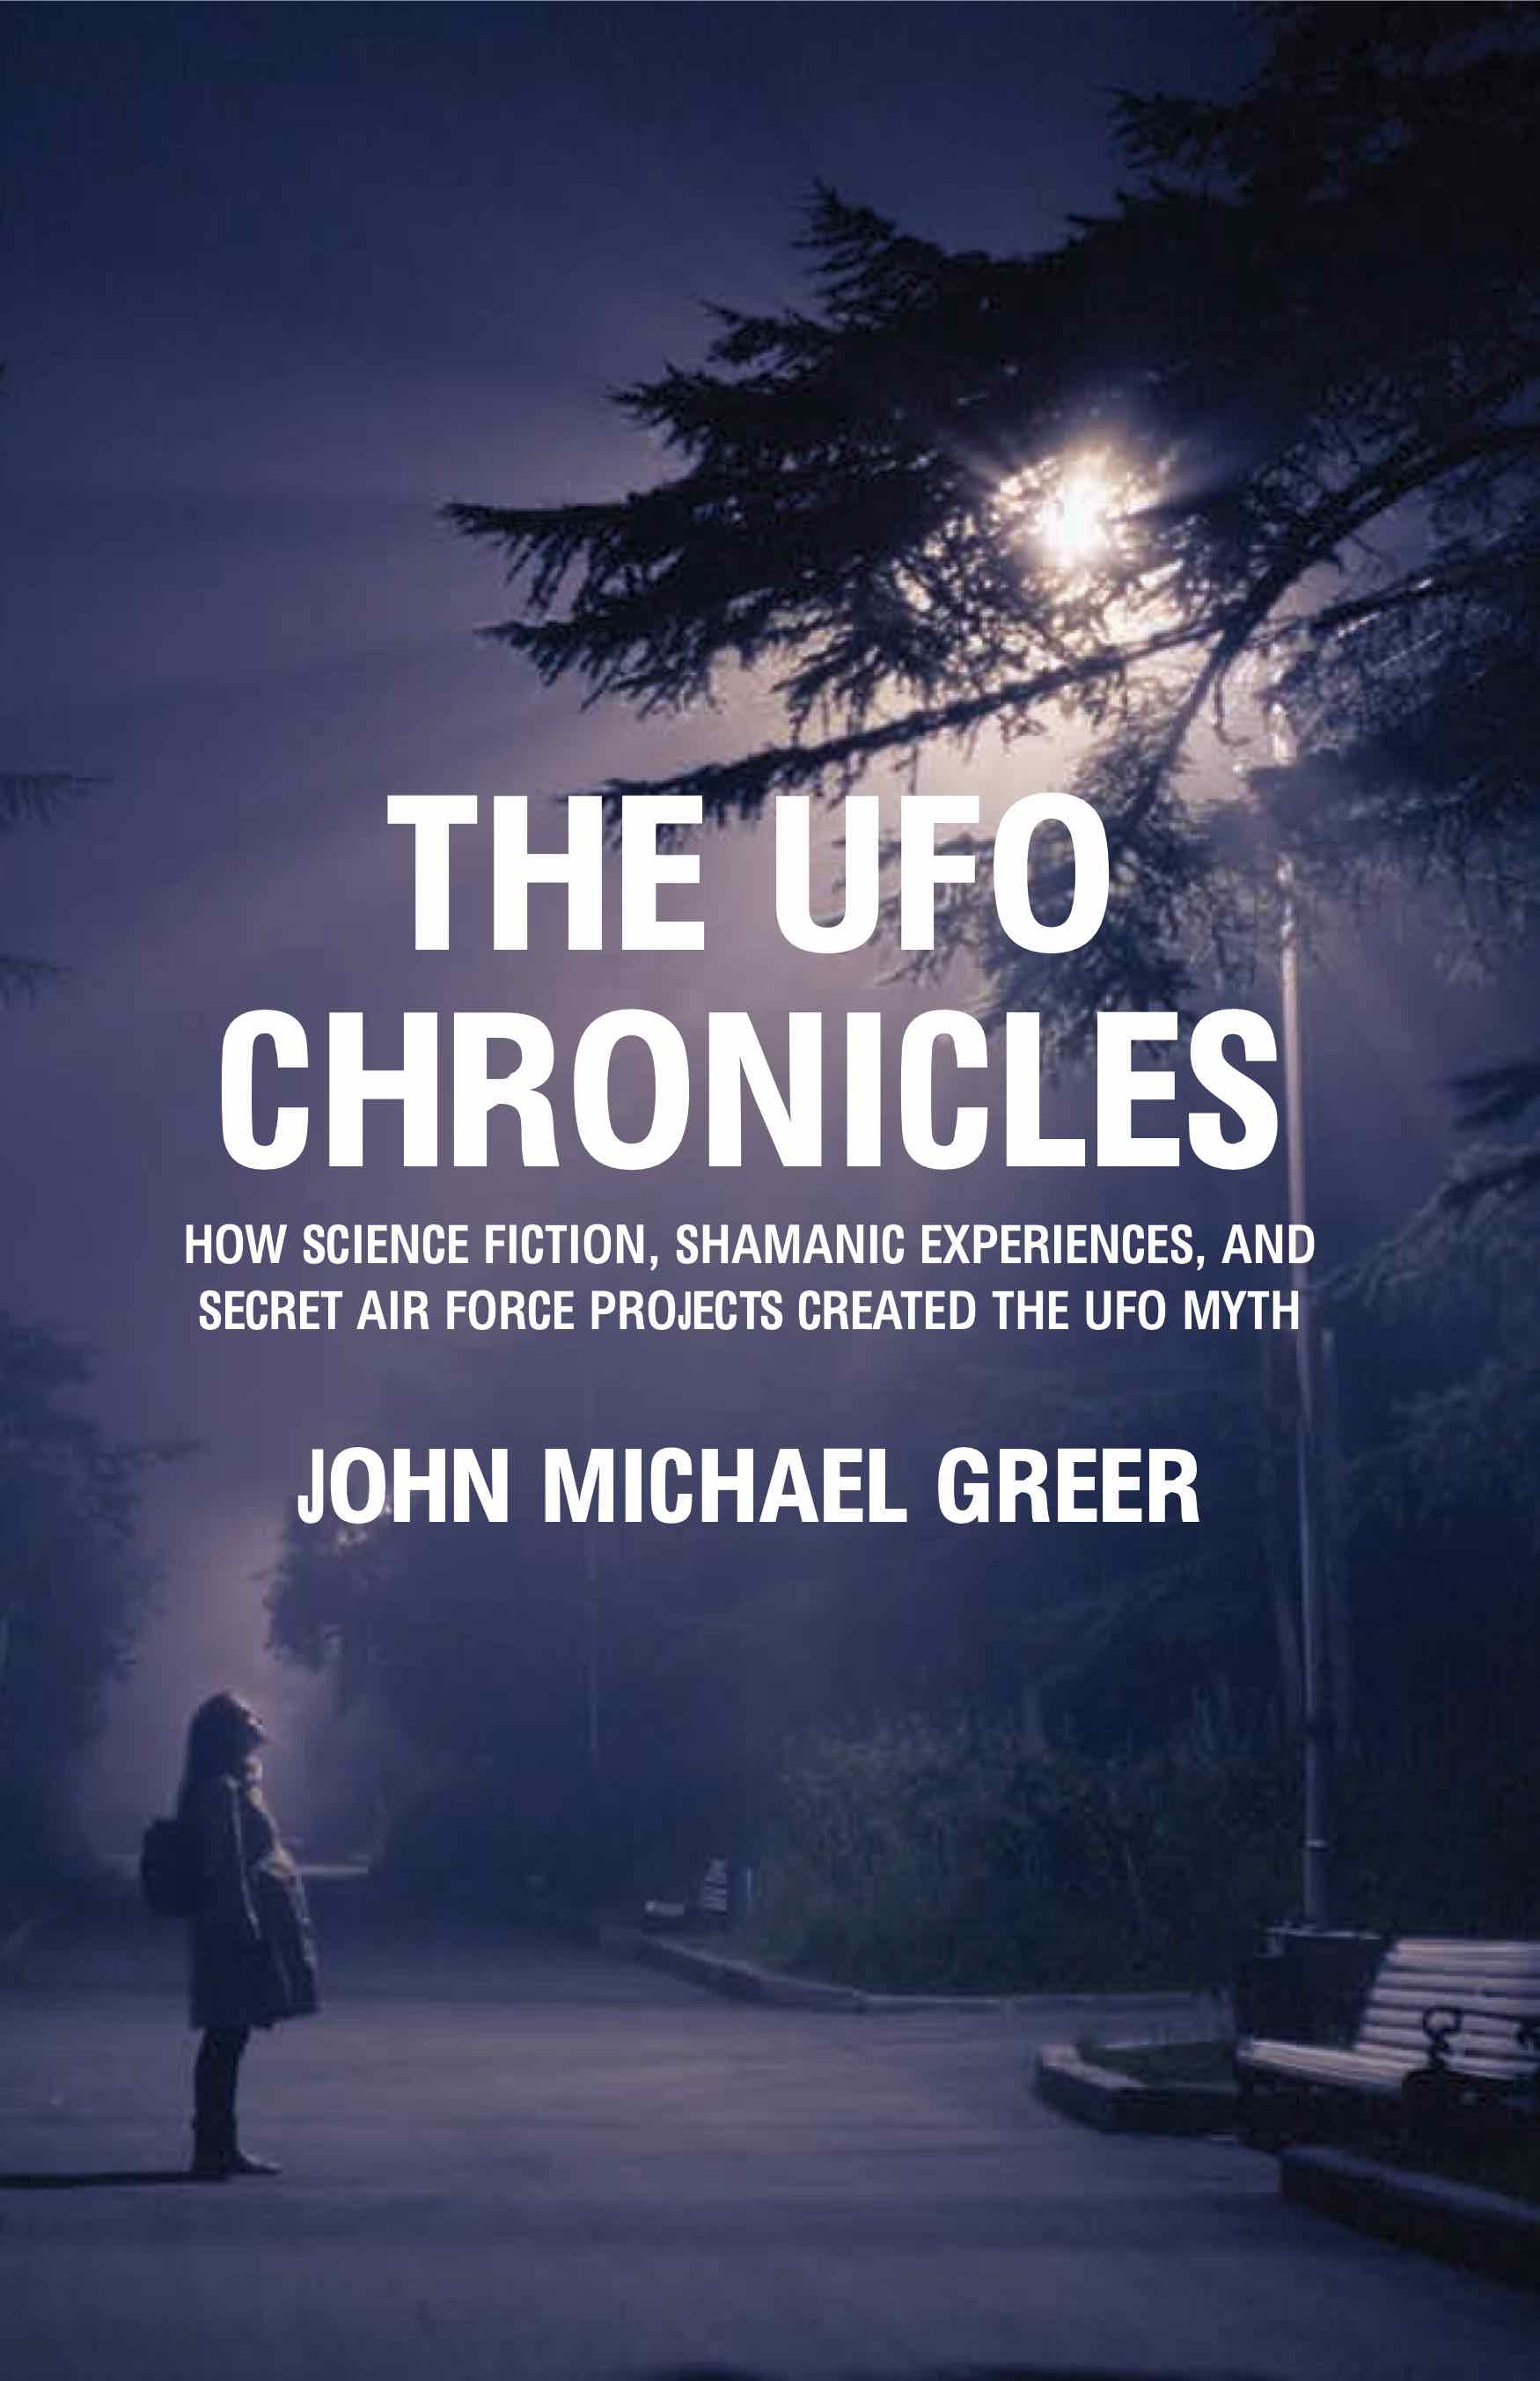 The UFO Chronicles: How Science Fiction, Shamanic Experiences, and Secret Air Force Projects Created the UFO Myth